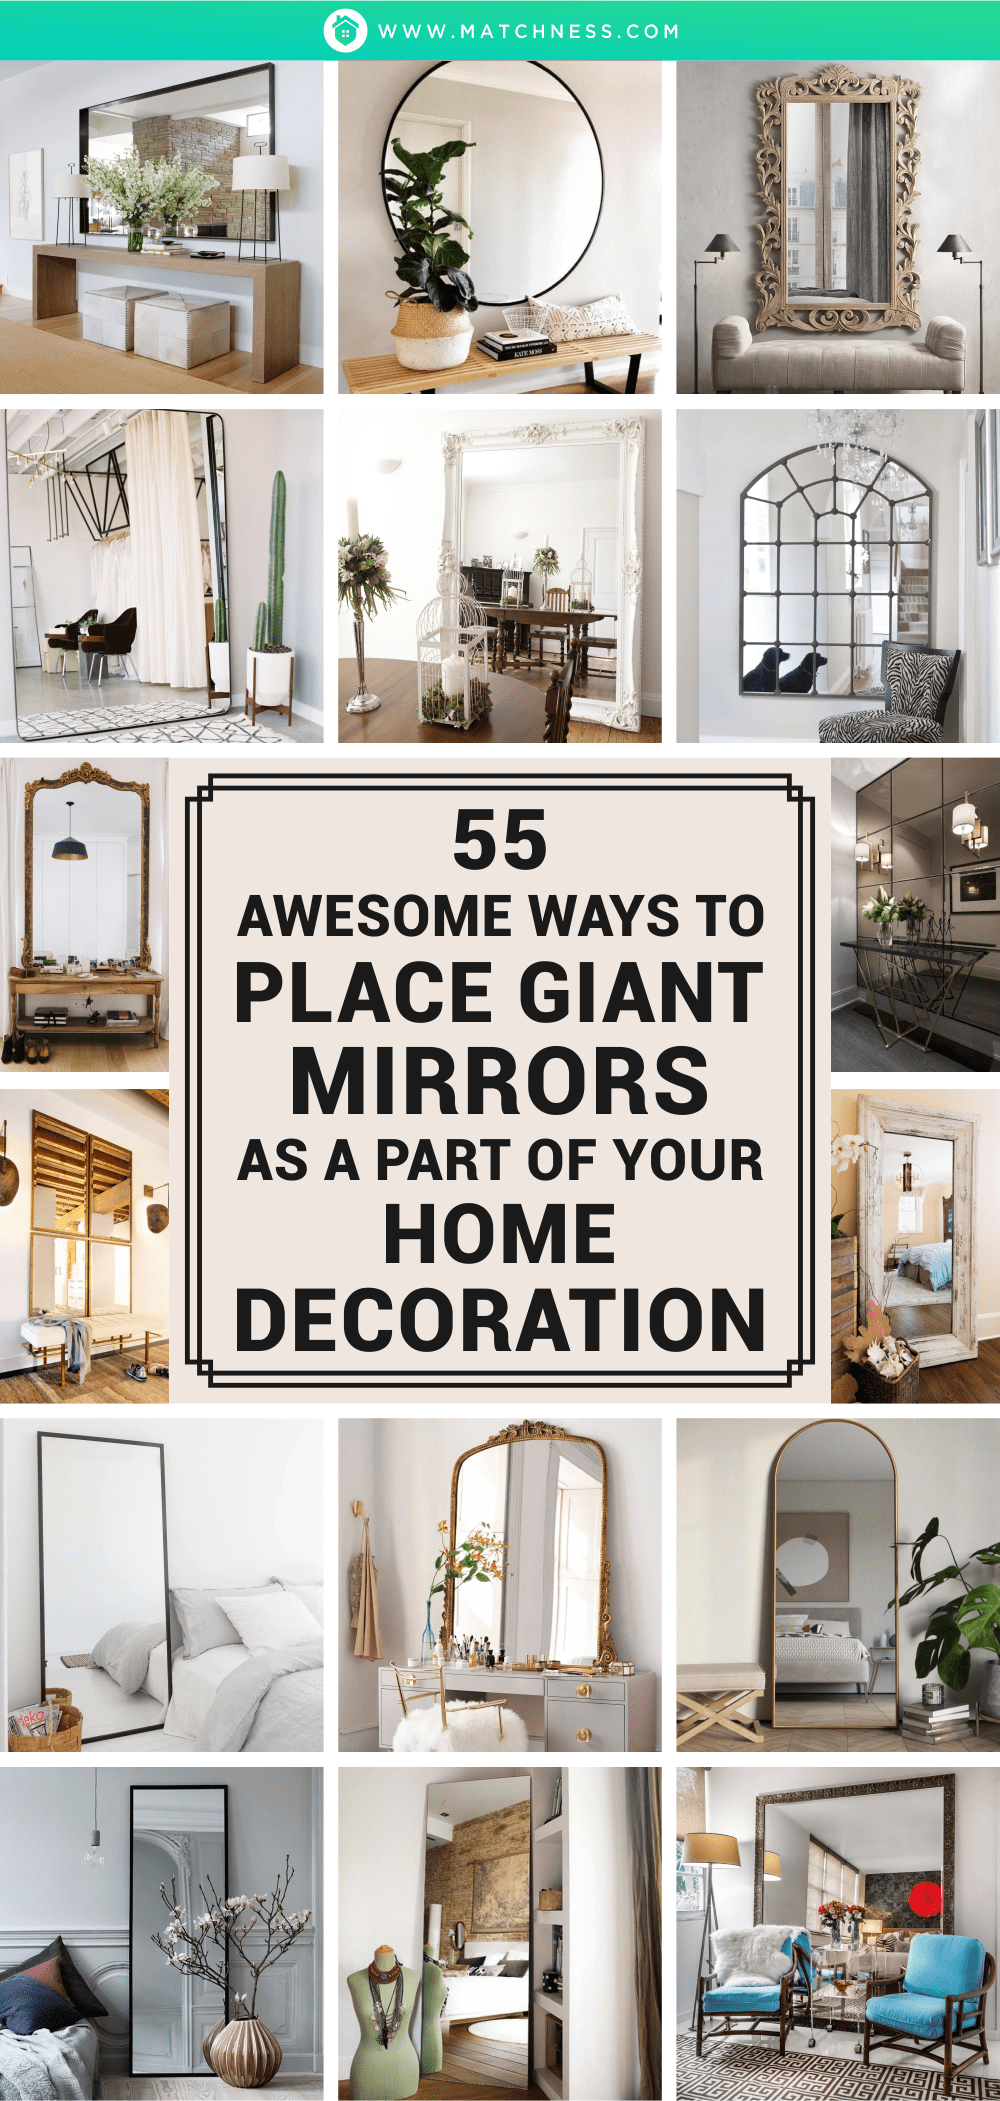 55-awesome-ways-to-place-giant-mirrors-as-a-part-of-your-home-decoration1